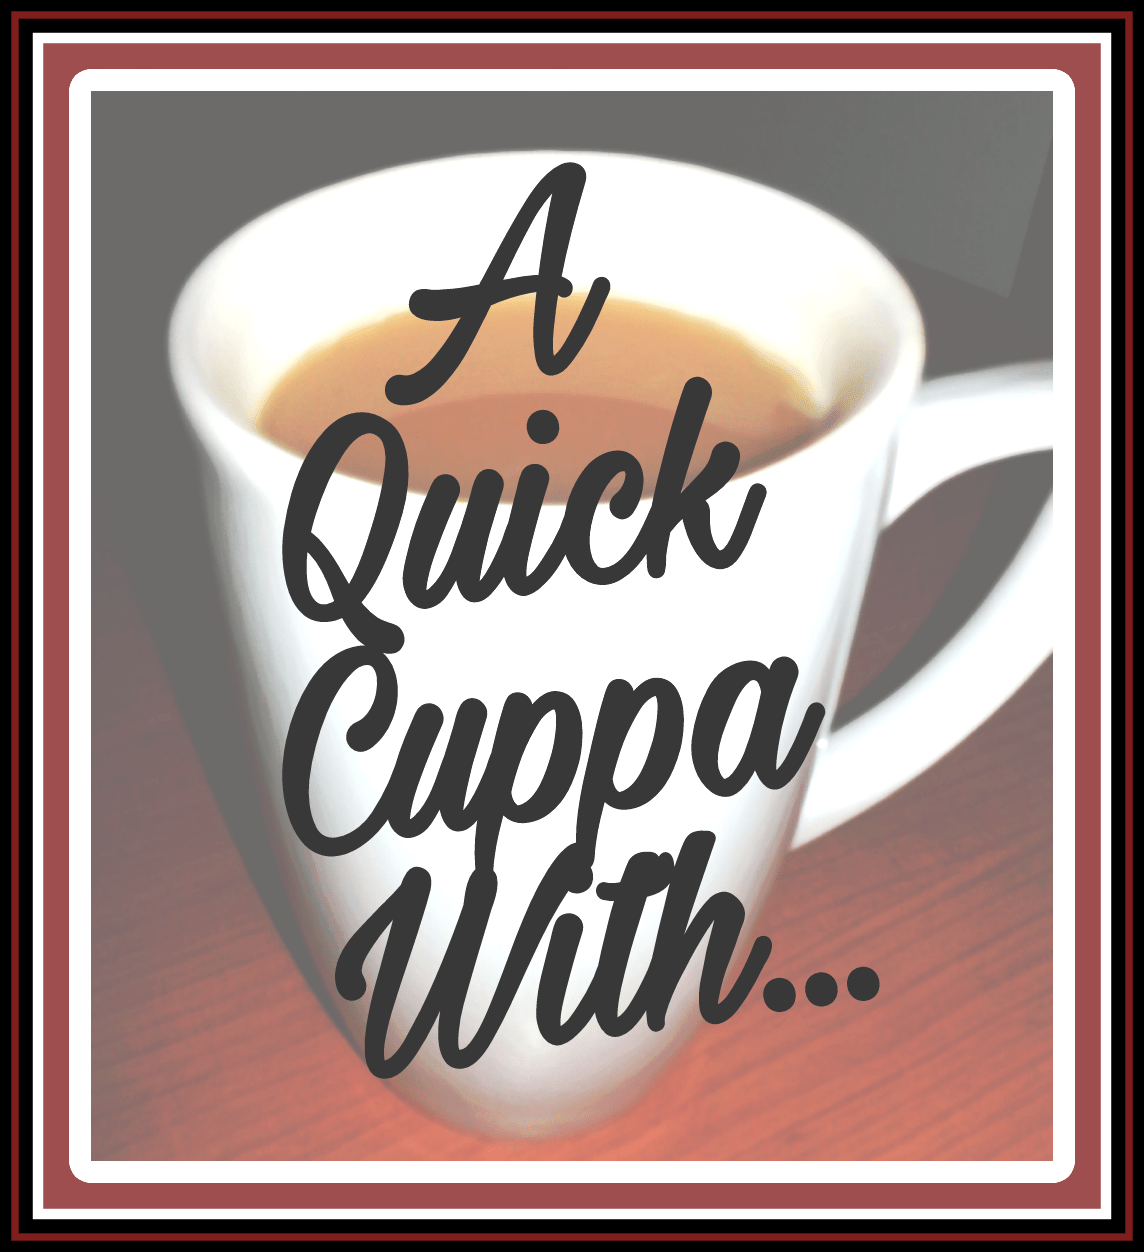 A Quick Cuppa With… The Happy Weaner